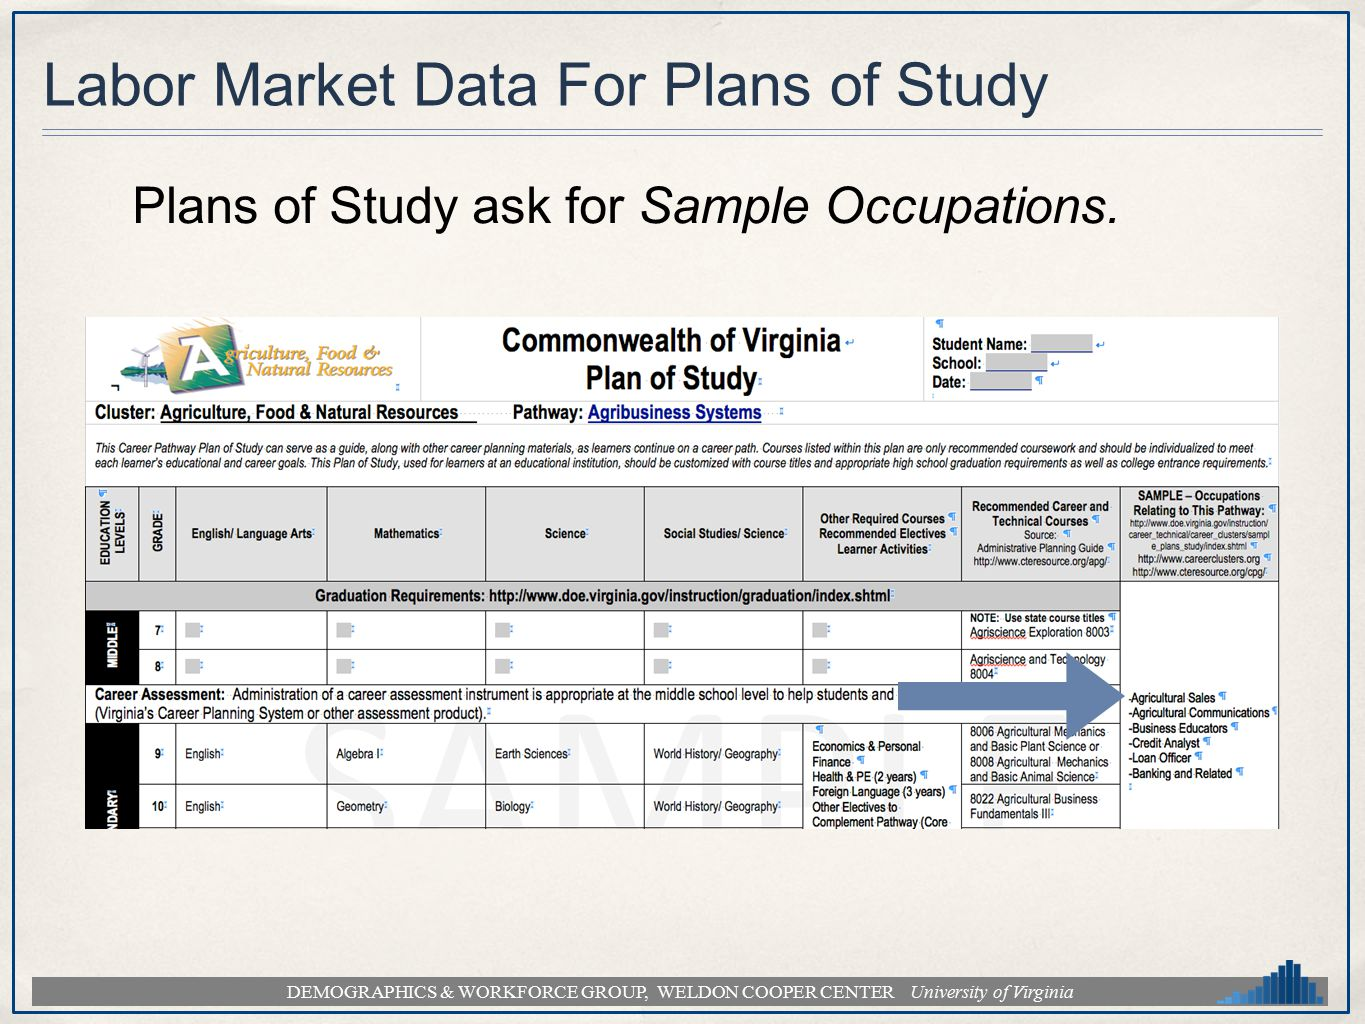 DEMOGRAPHICS & WORKFORCE GROUP, WELDON COOPER CENTER University of Virginia Labor Market Data For Plans of Study Plans of Study ask for Sample Occupat